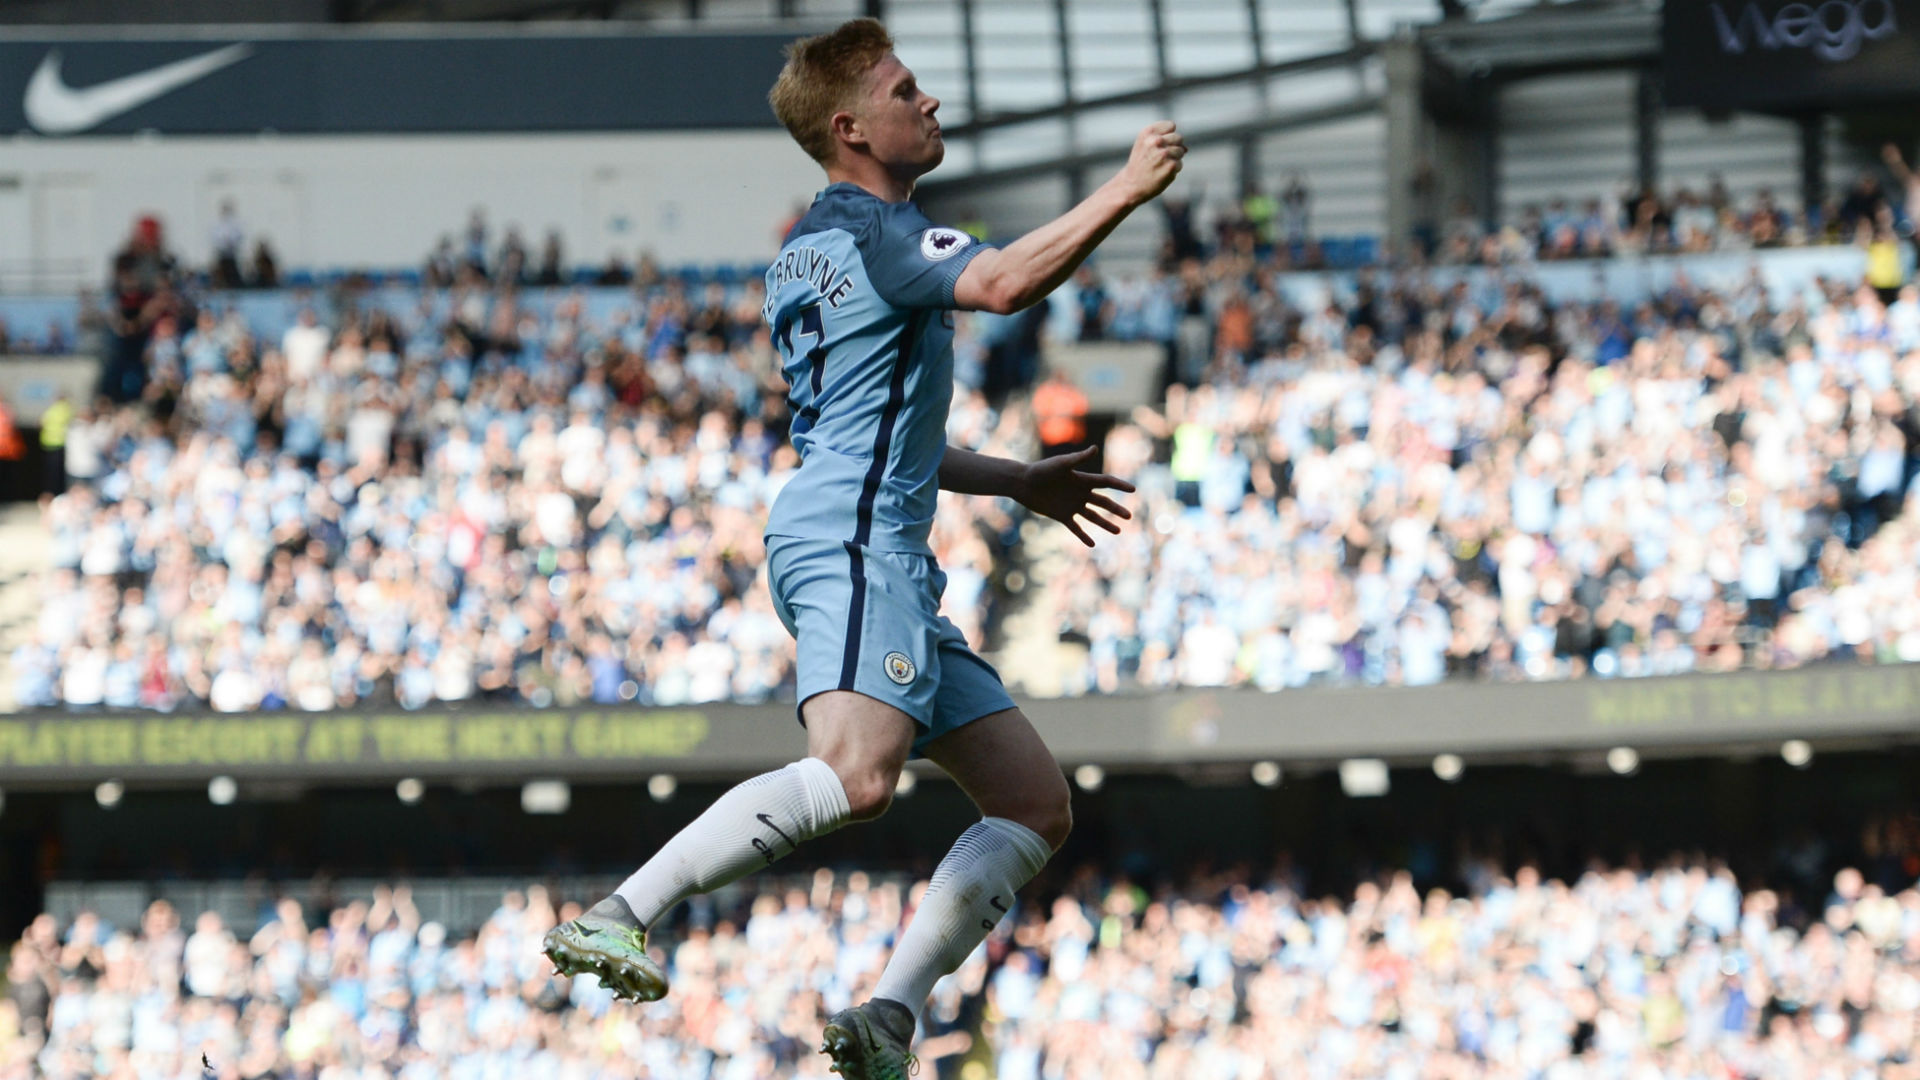 High flying KDB, but Pep was instantly dismissive of any early season chat about City achieving the Quadruple.